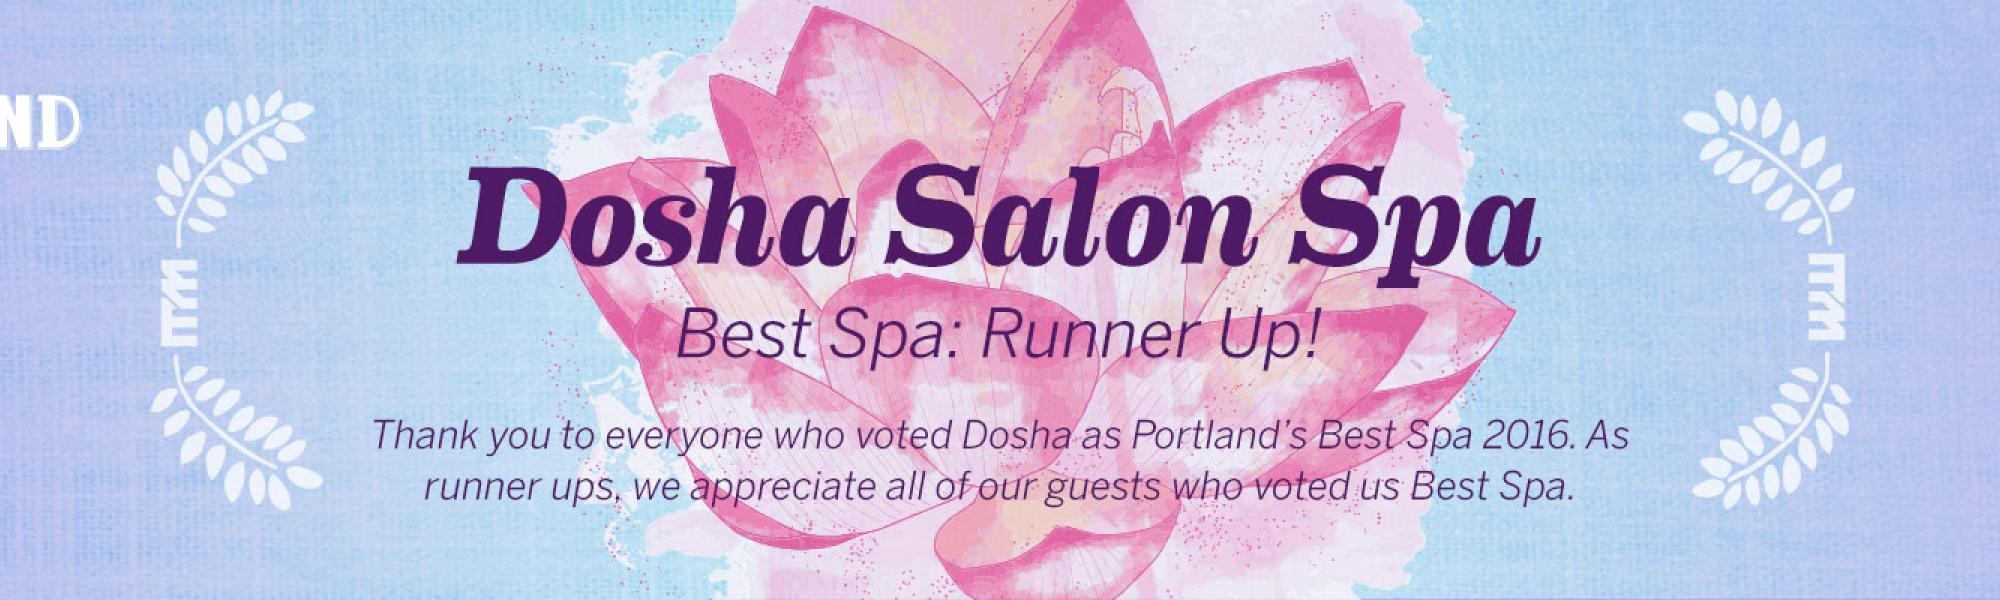 Best of Portland: Best Spa Runner Up Dosha Salon Spa